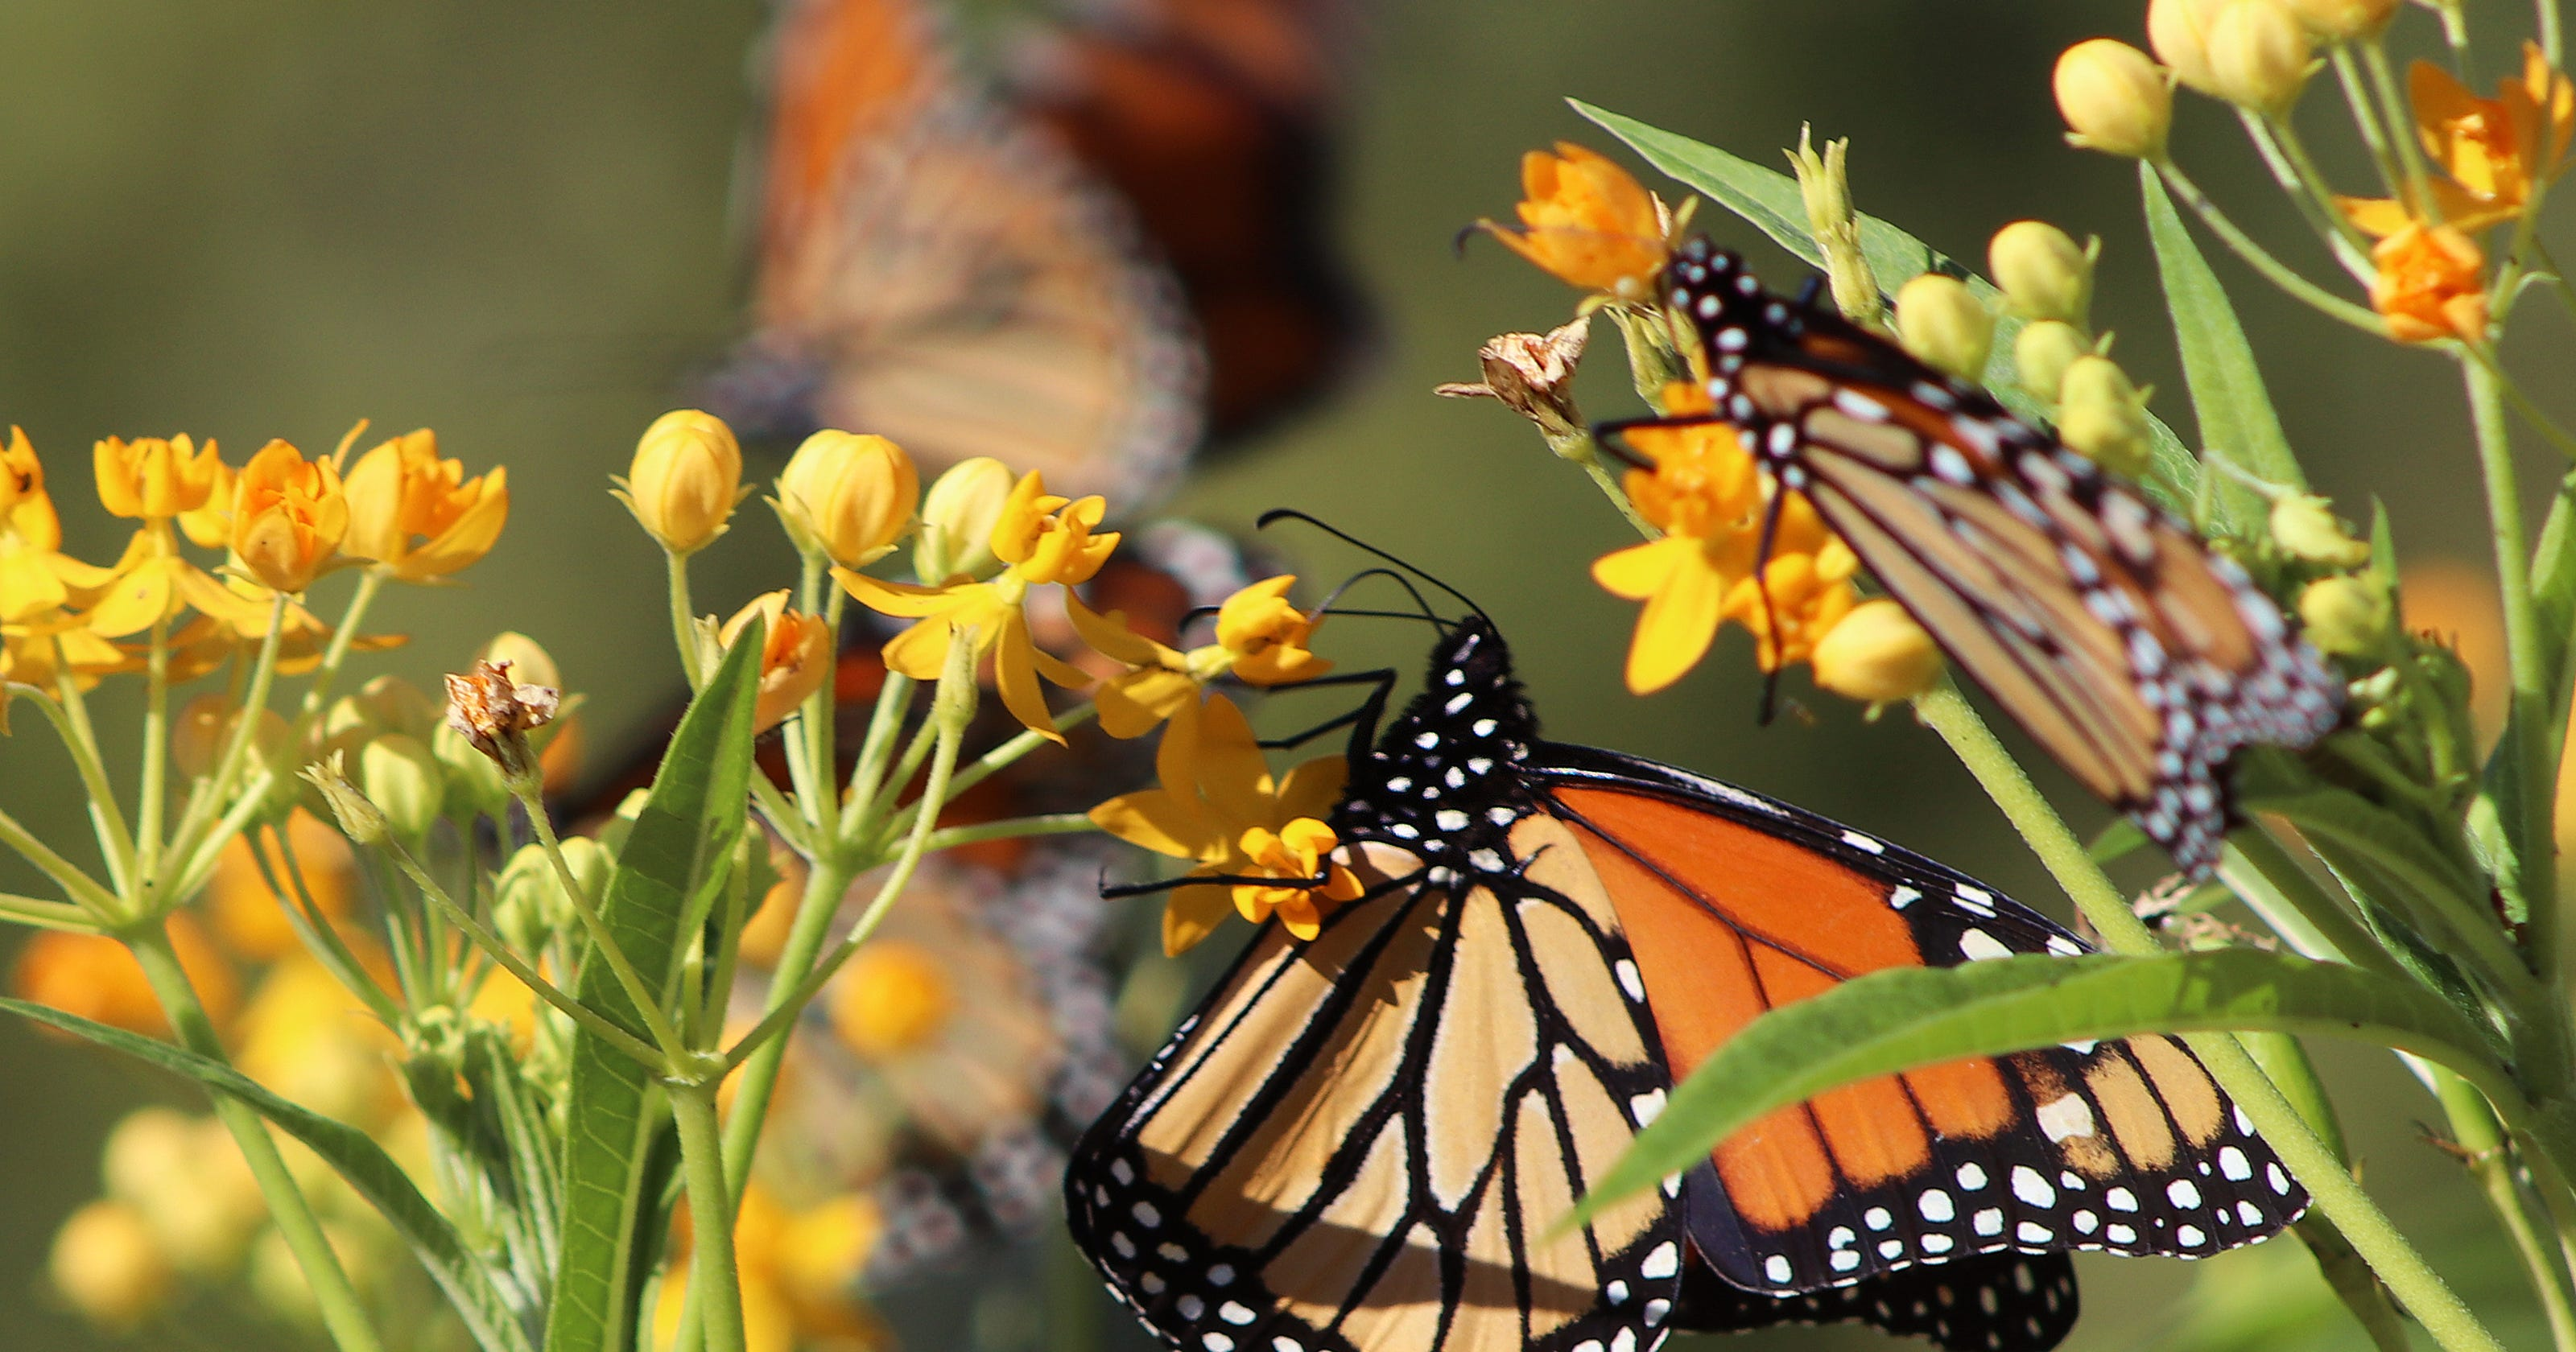 Monarch butterflies are in danger, but milkweed could save them